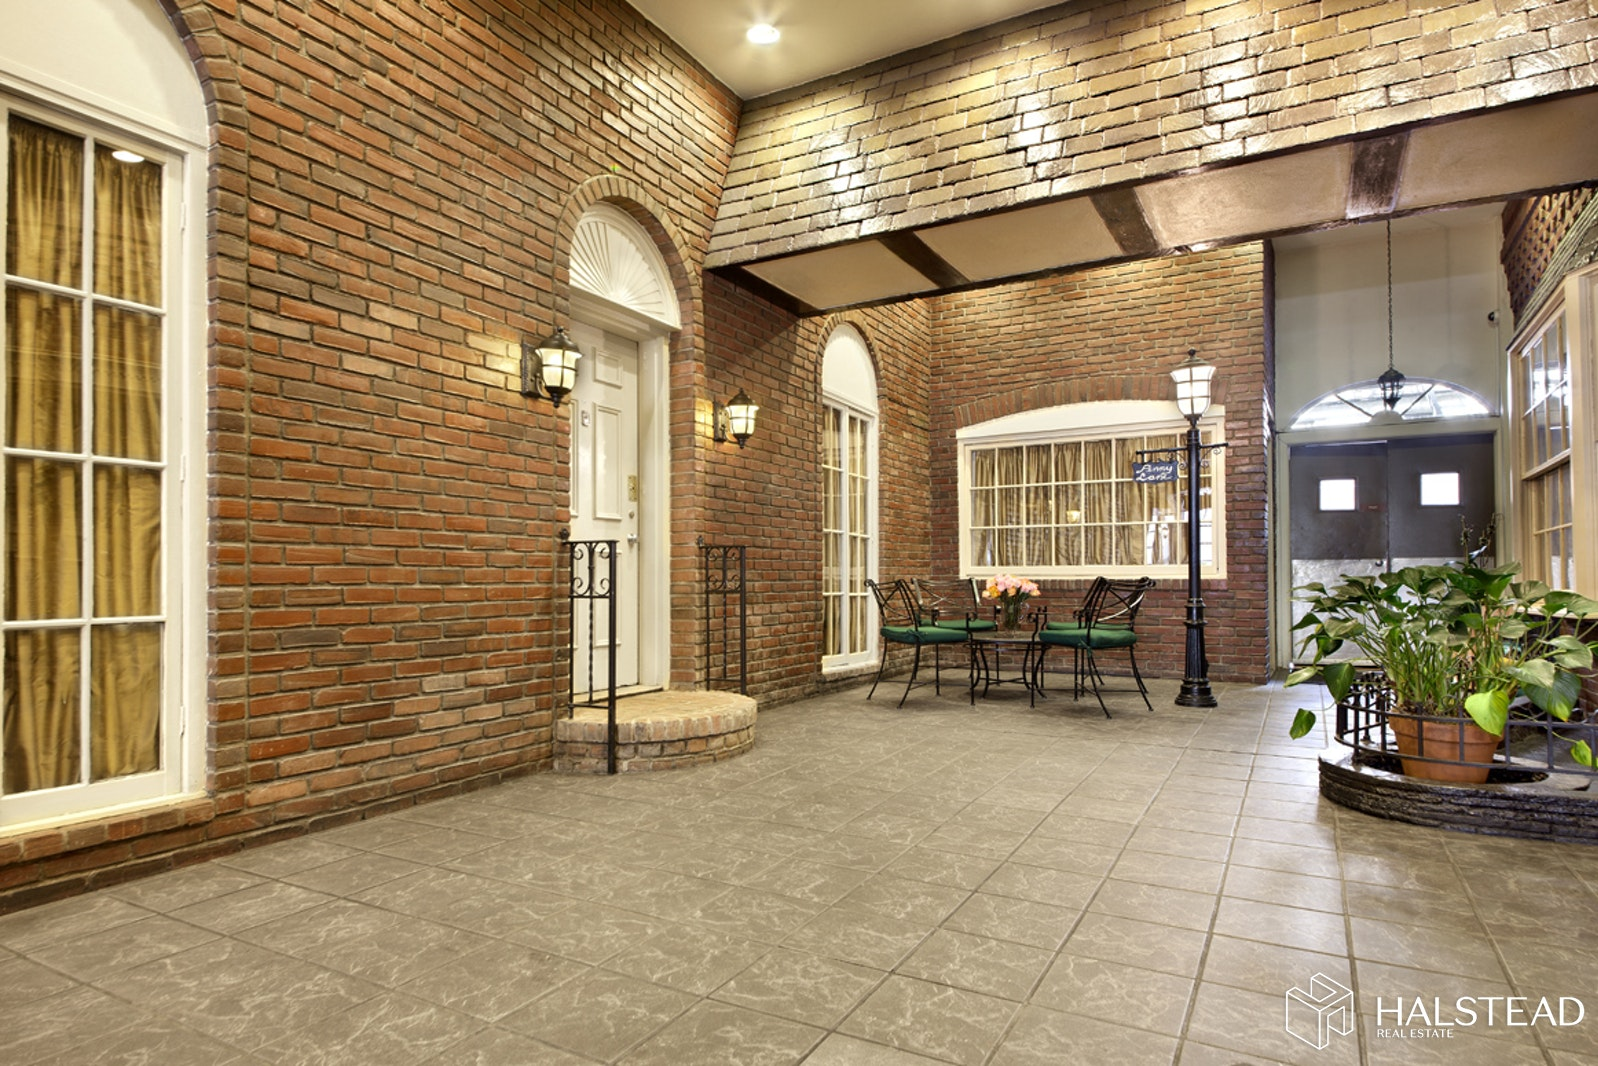 215 EAST 24TH STREET, Gramercy Park, $395,000, Web #: 19971222